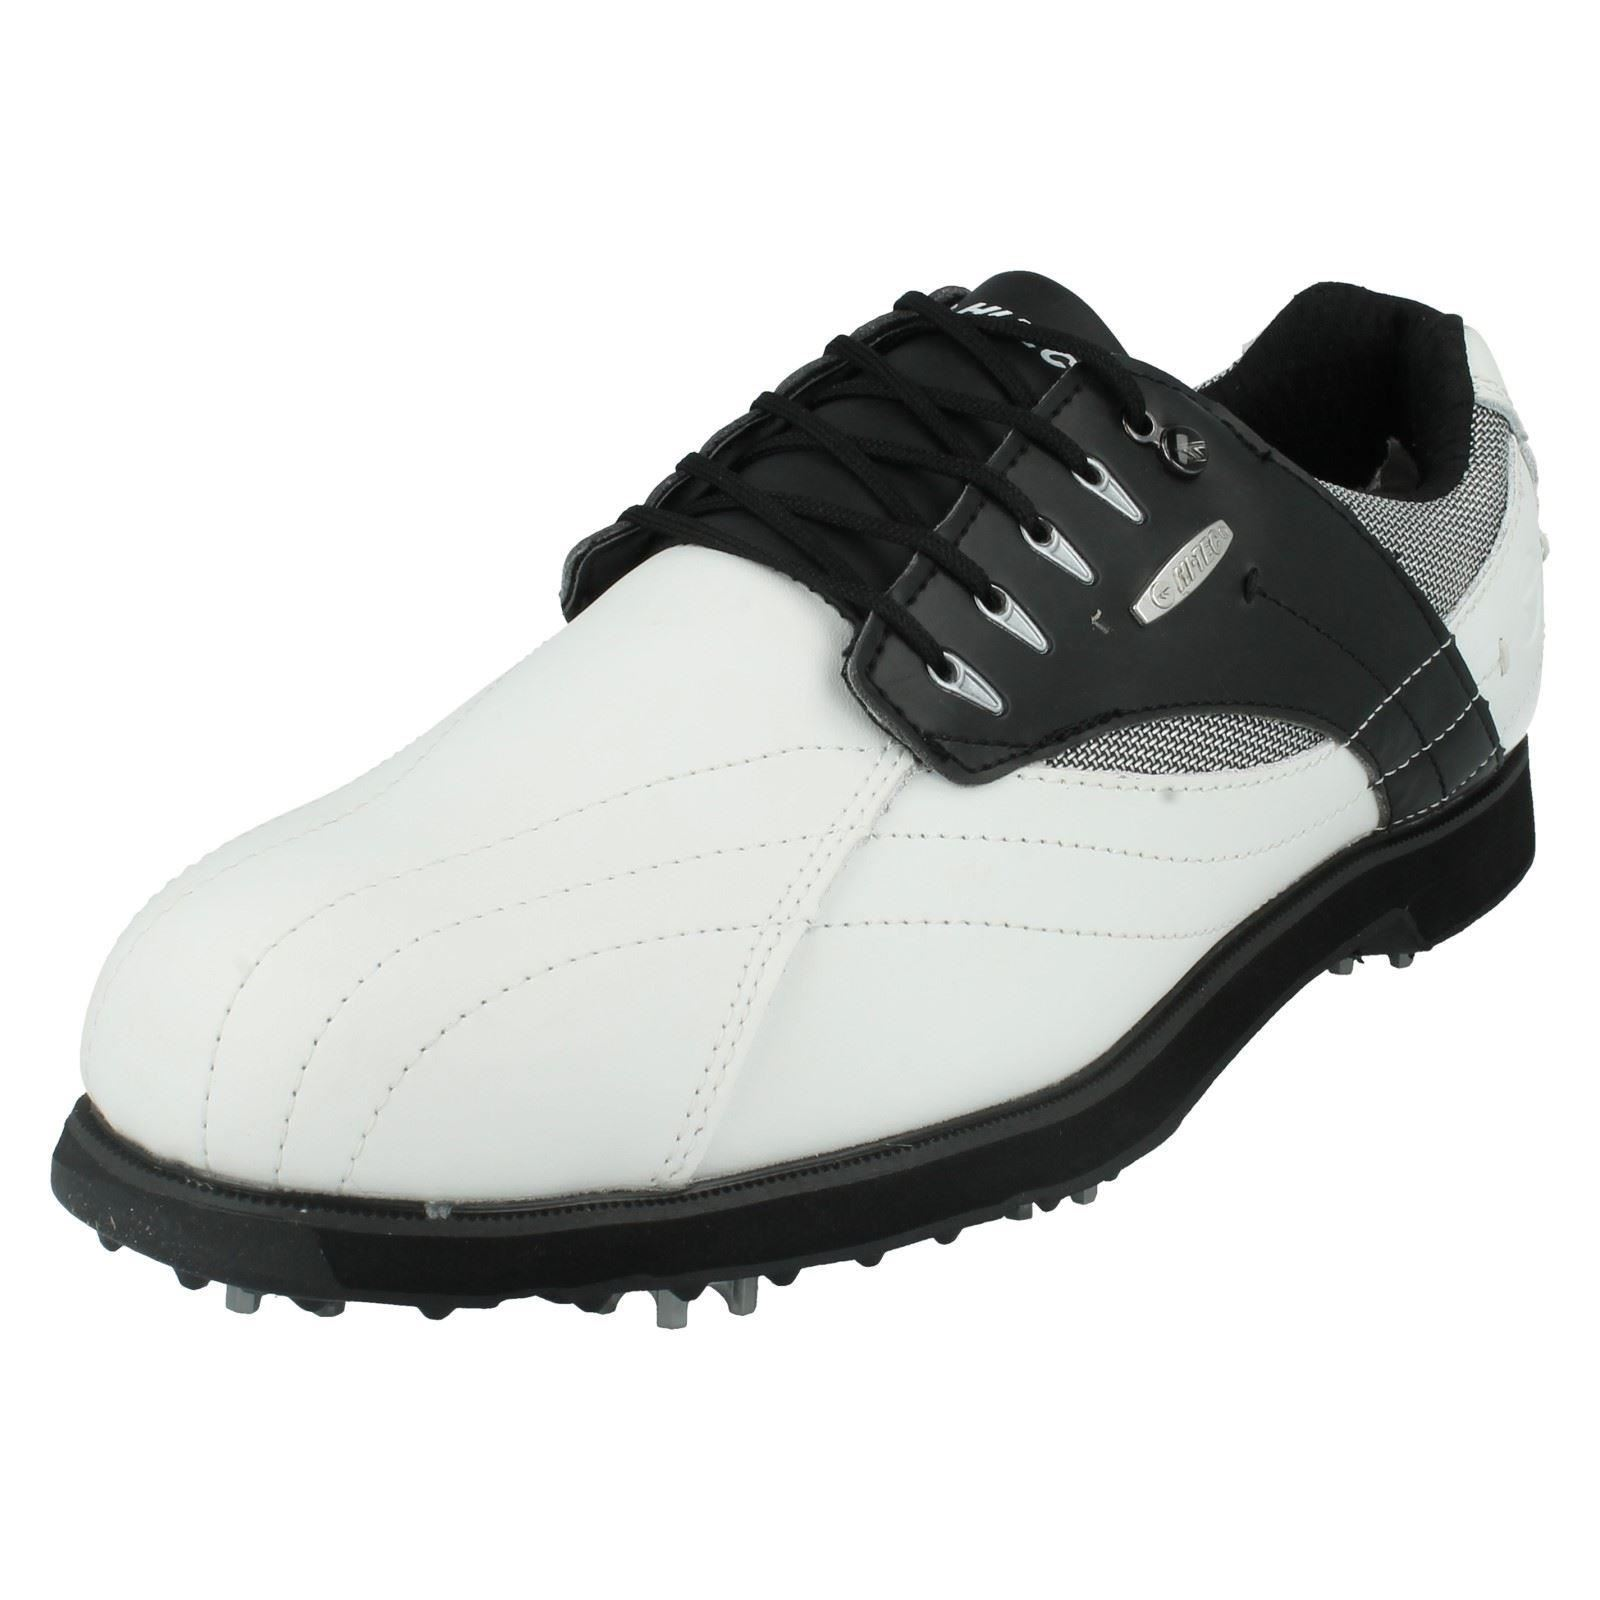 UK Shoes Store  MENS DRI TEC G 300 SPORTS GOLF SHOES TRAINERS LACE UP LEATHER WATERPROOF HI TEC